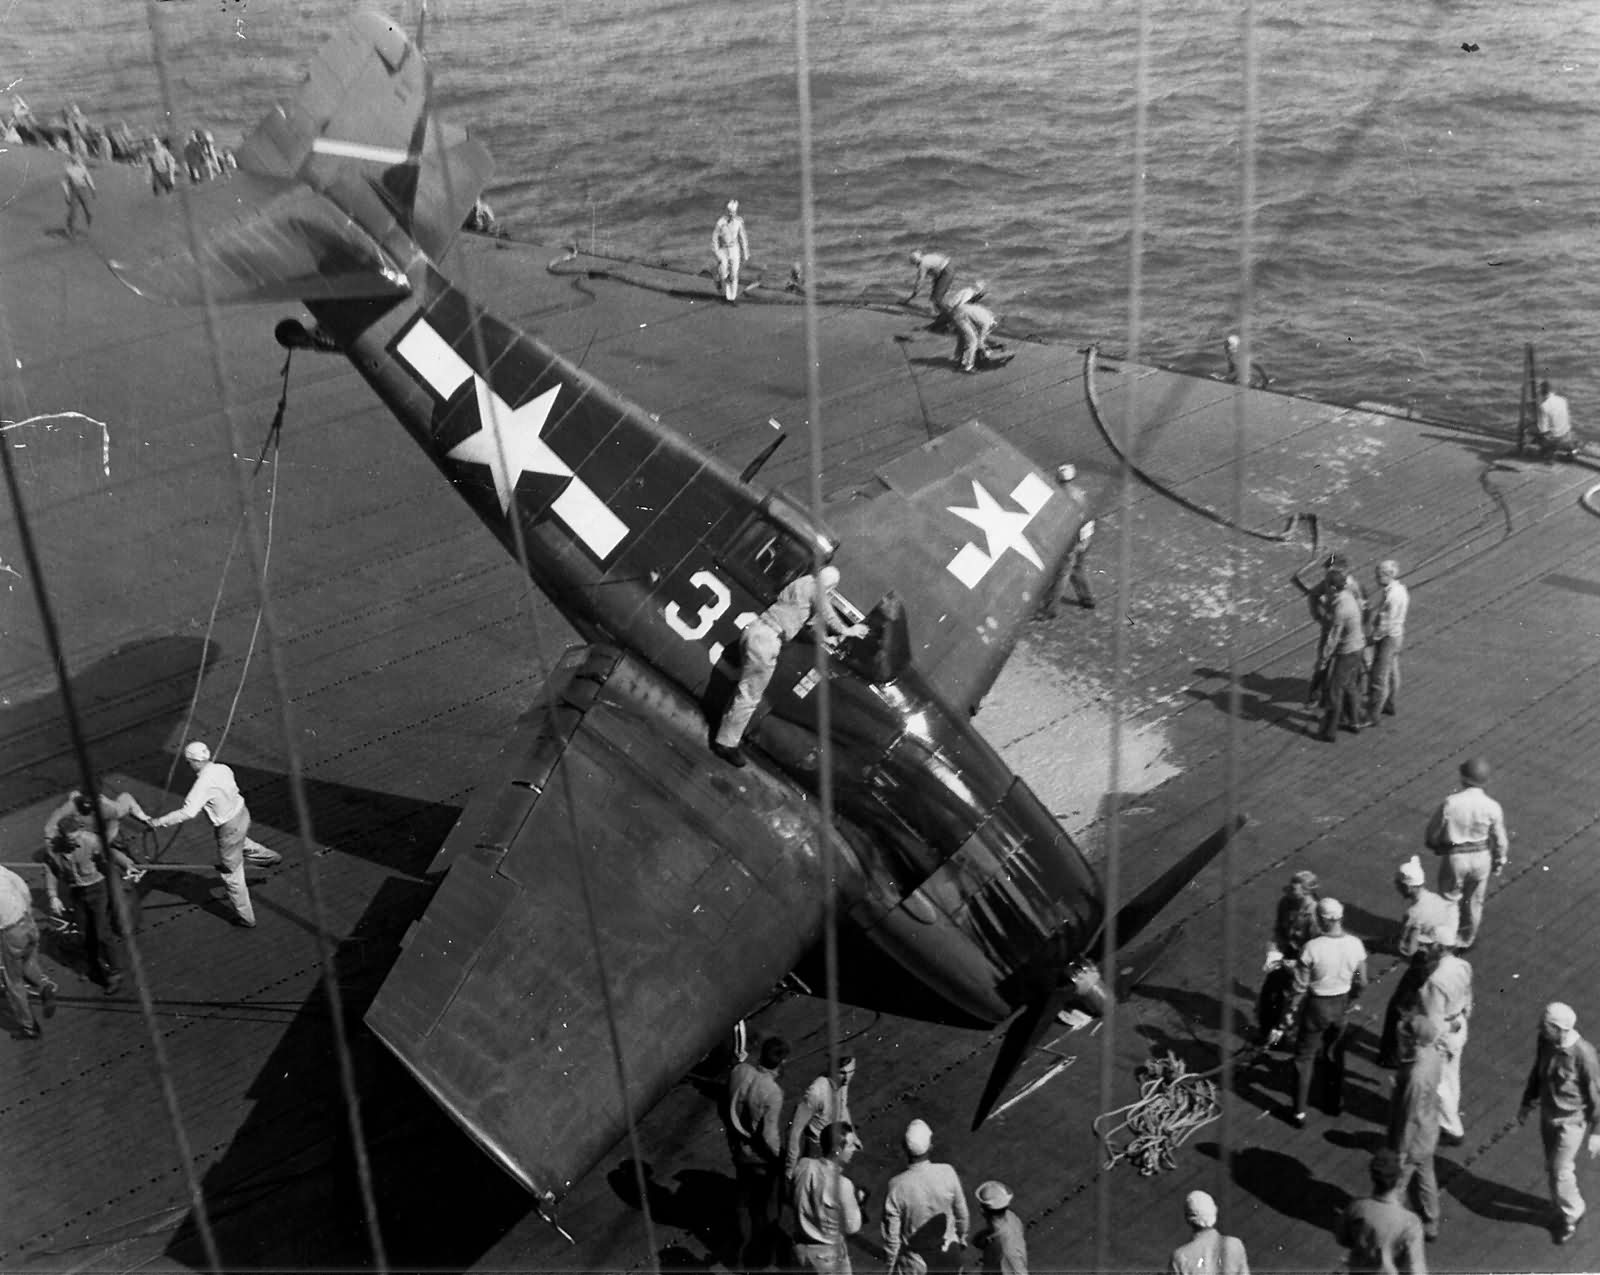 F6F-3_Hellcat_33_of_VF-5_on_its_nose_aft